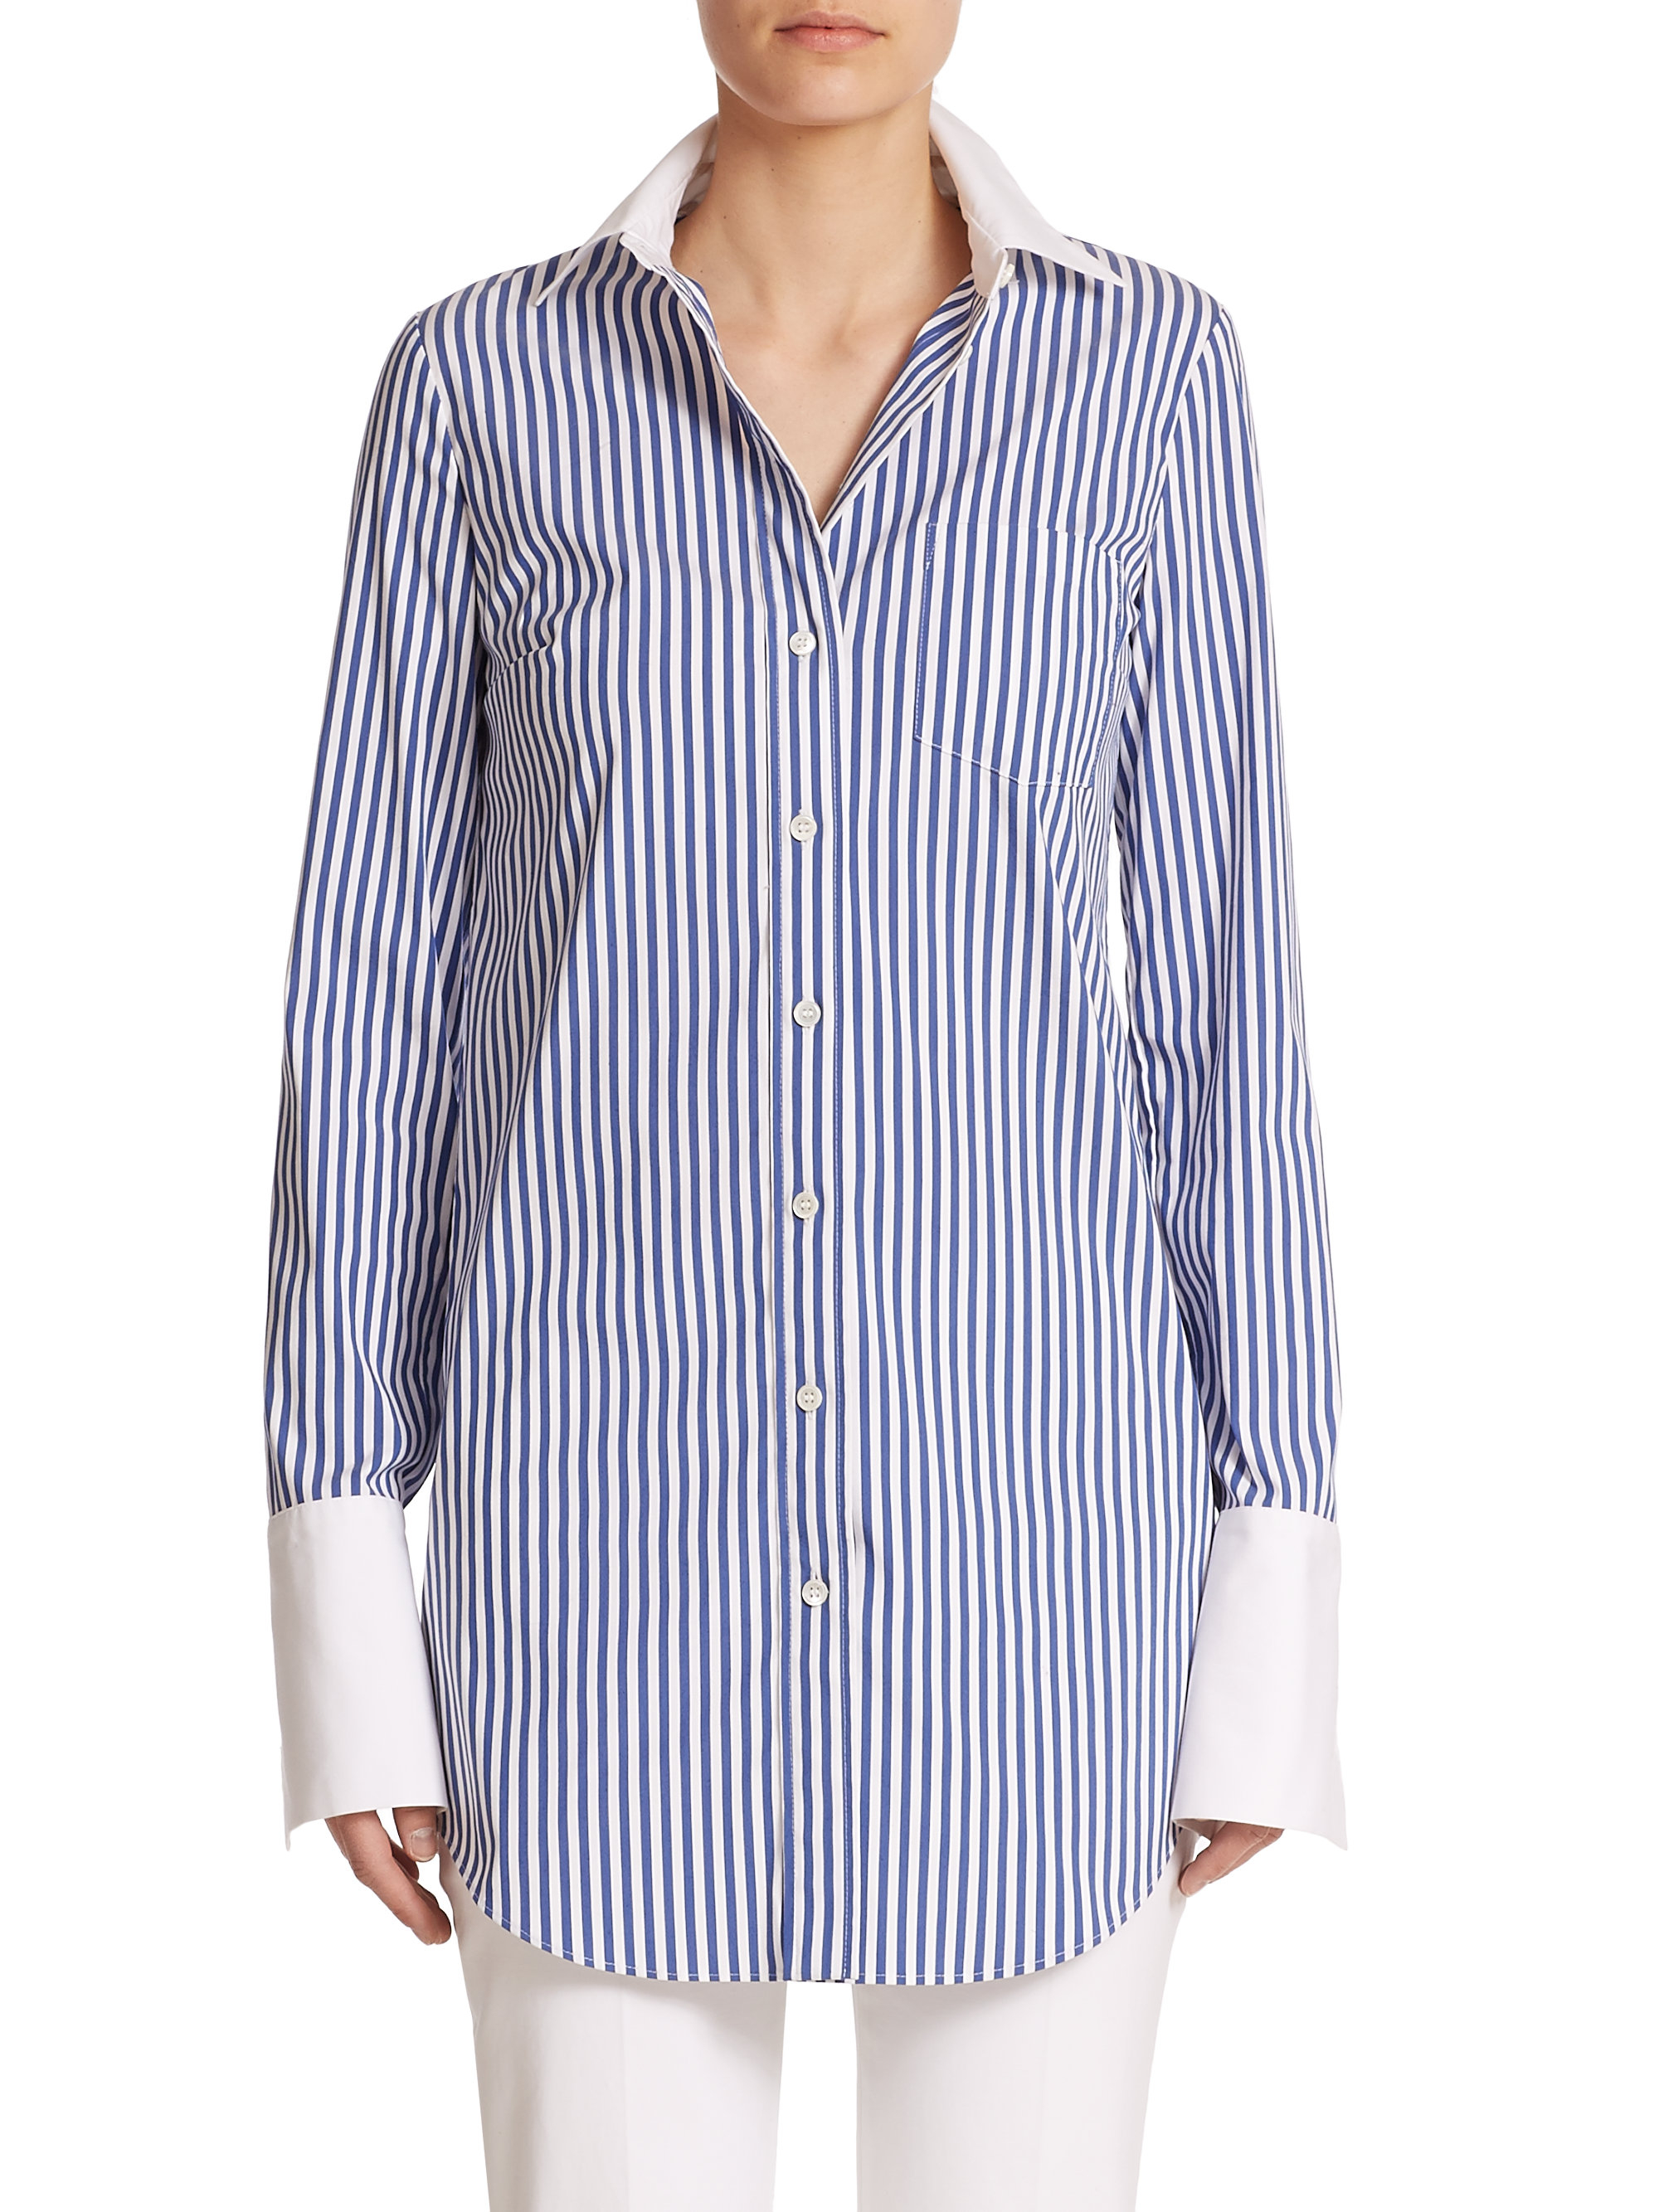 Lyst Michael Kors Striped Button Down Shirt In Blue